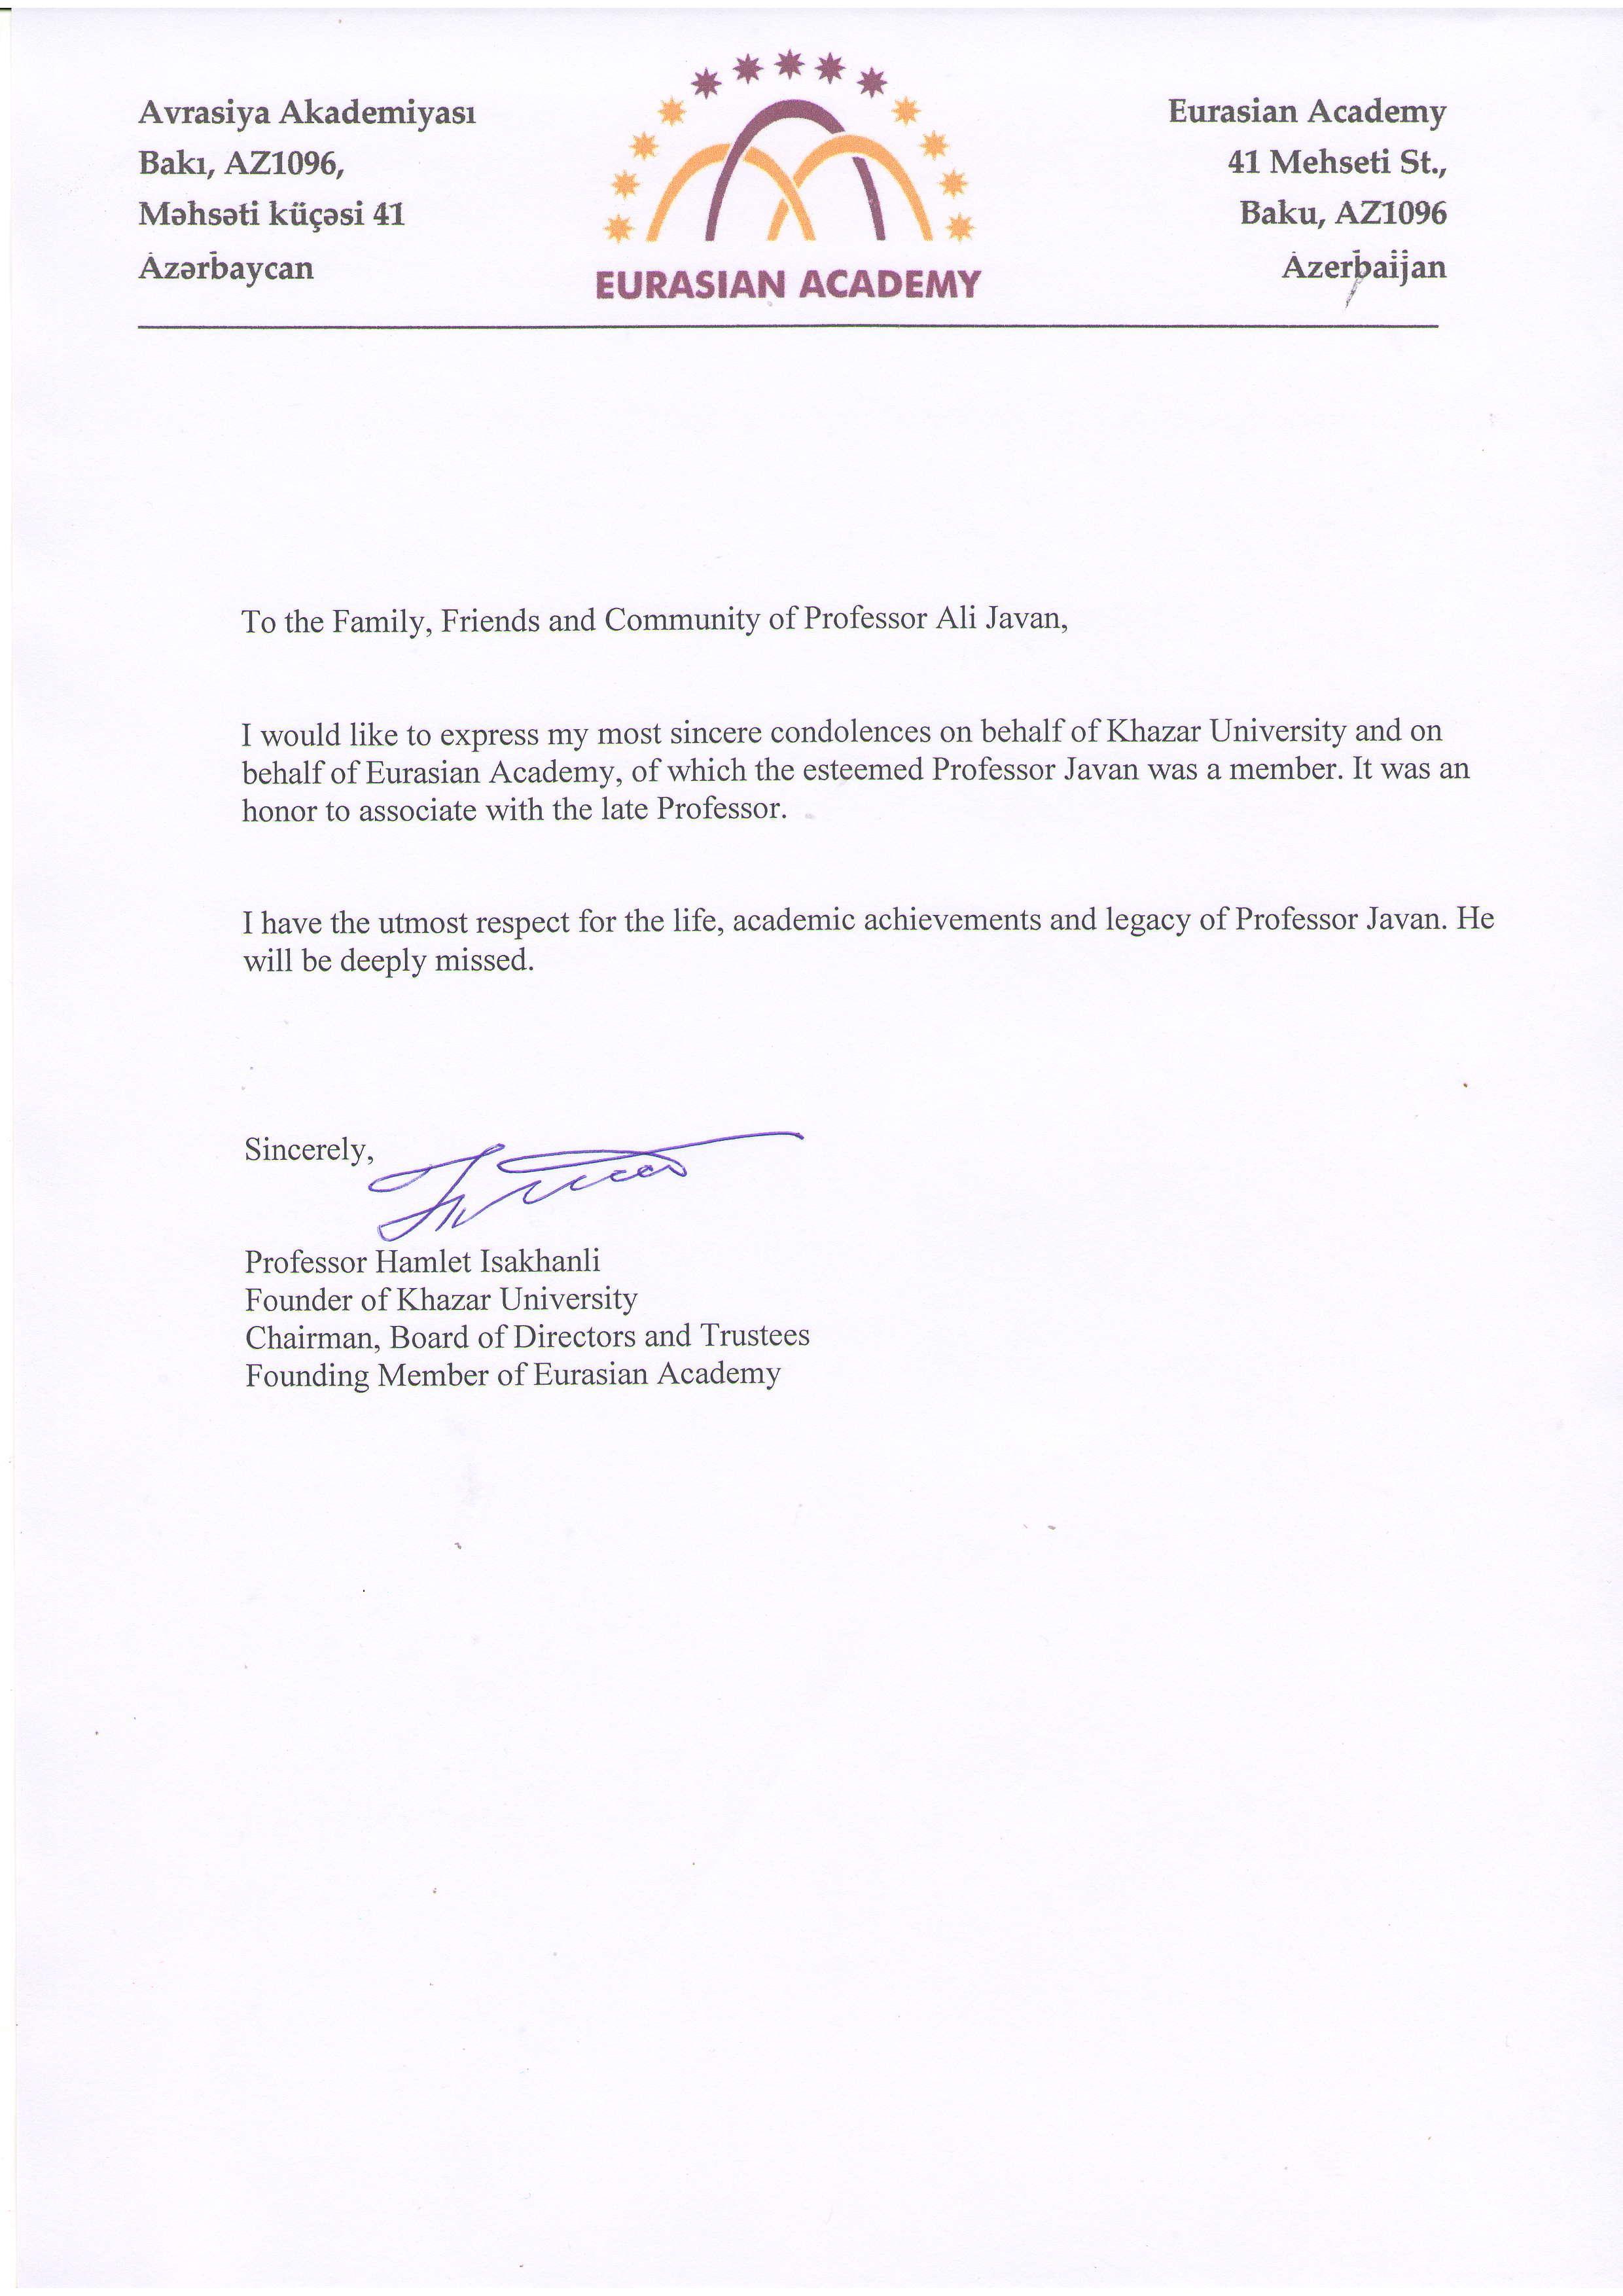 Condolence Letter Exle   Images  Christian Cover Letter